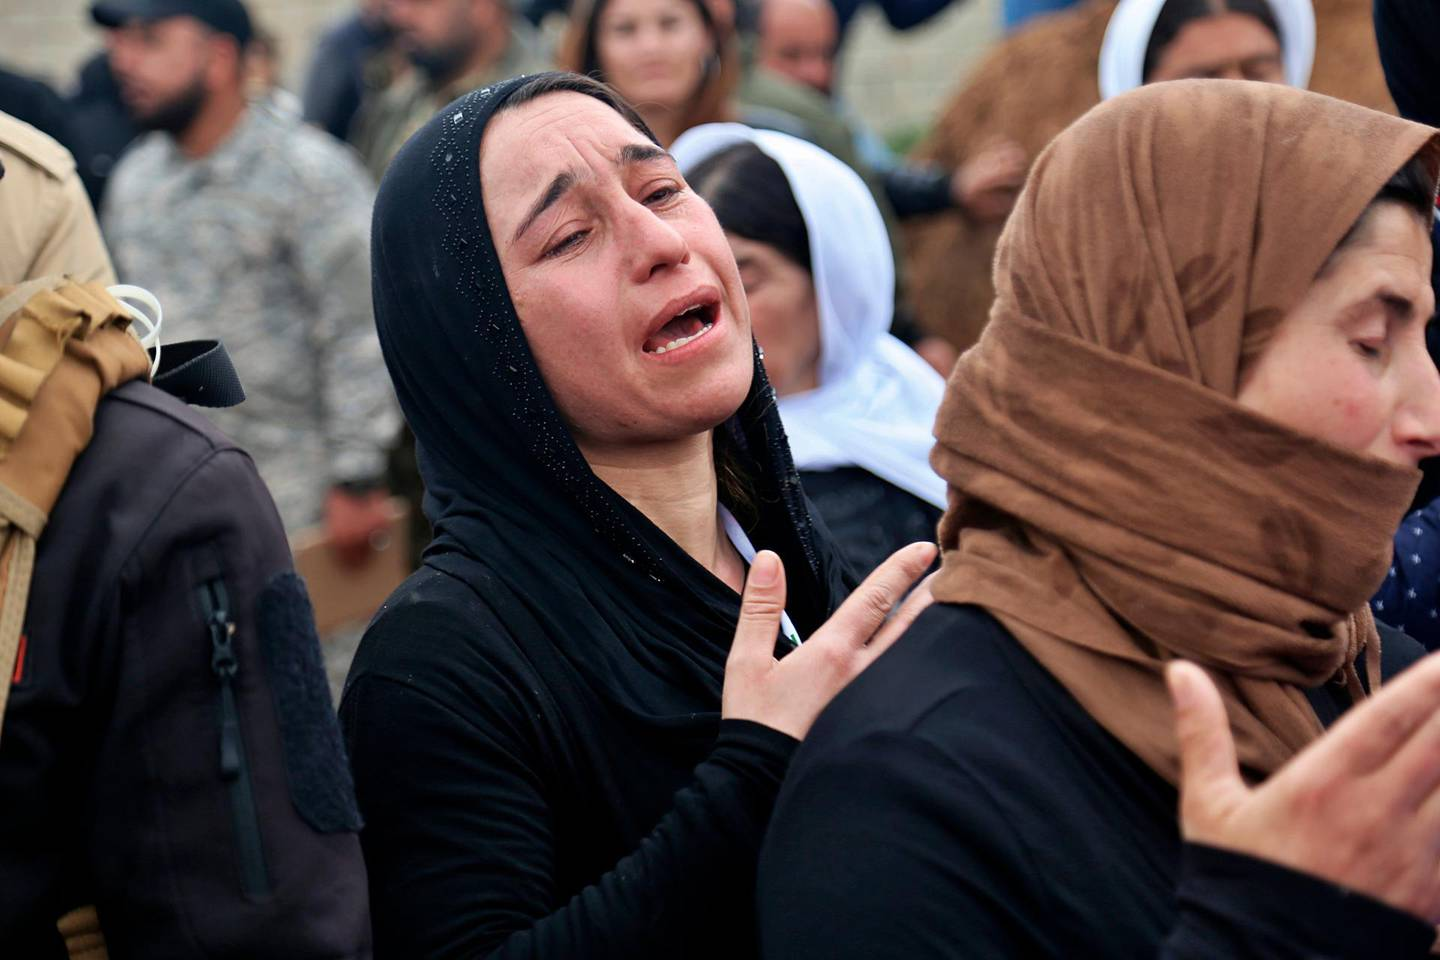 In this Friday, March 15, 2019 picture, Iraqi Yazidi women mourn during exhumation process of a mass grave in Iraq's northwestern region of Sinjar. The Iraqi government with U.N. support has started the exhumation process of the mass graves in Iraq's northwestern region of Sinjar.  (AP Photo/Farid Abdulwahed)